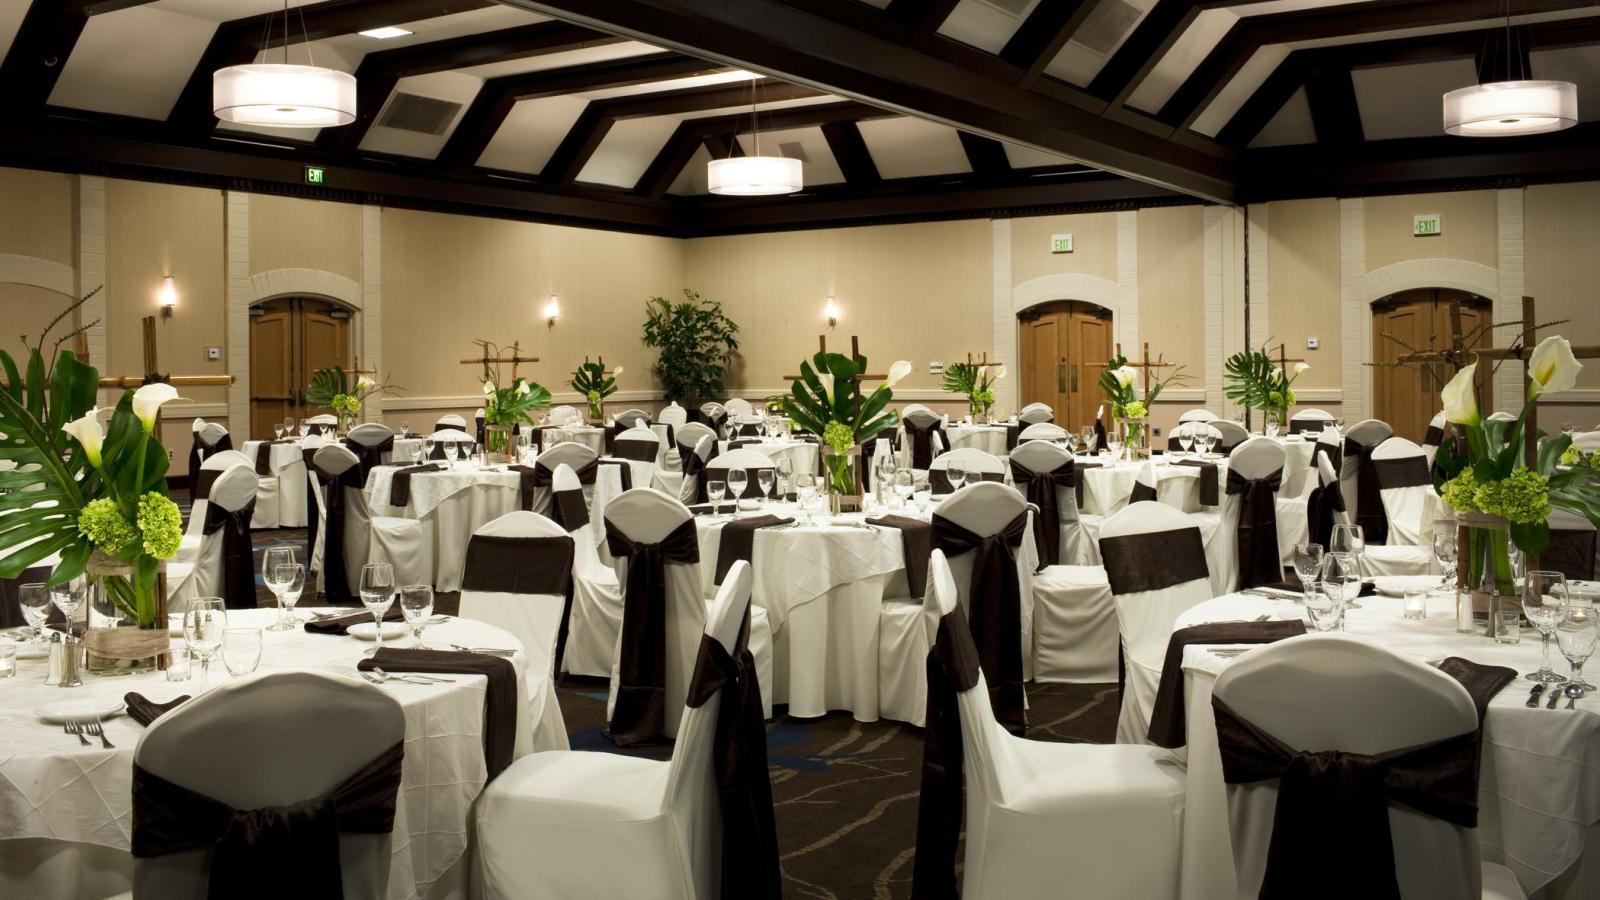 Salt Lake City Wedding Venue - Ballroom